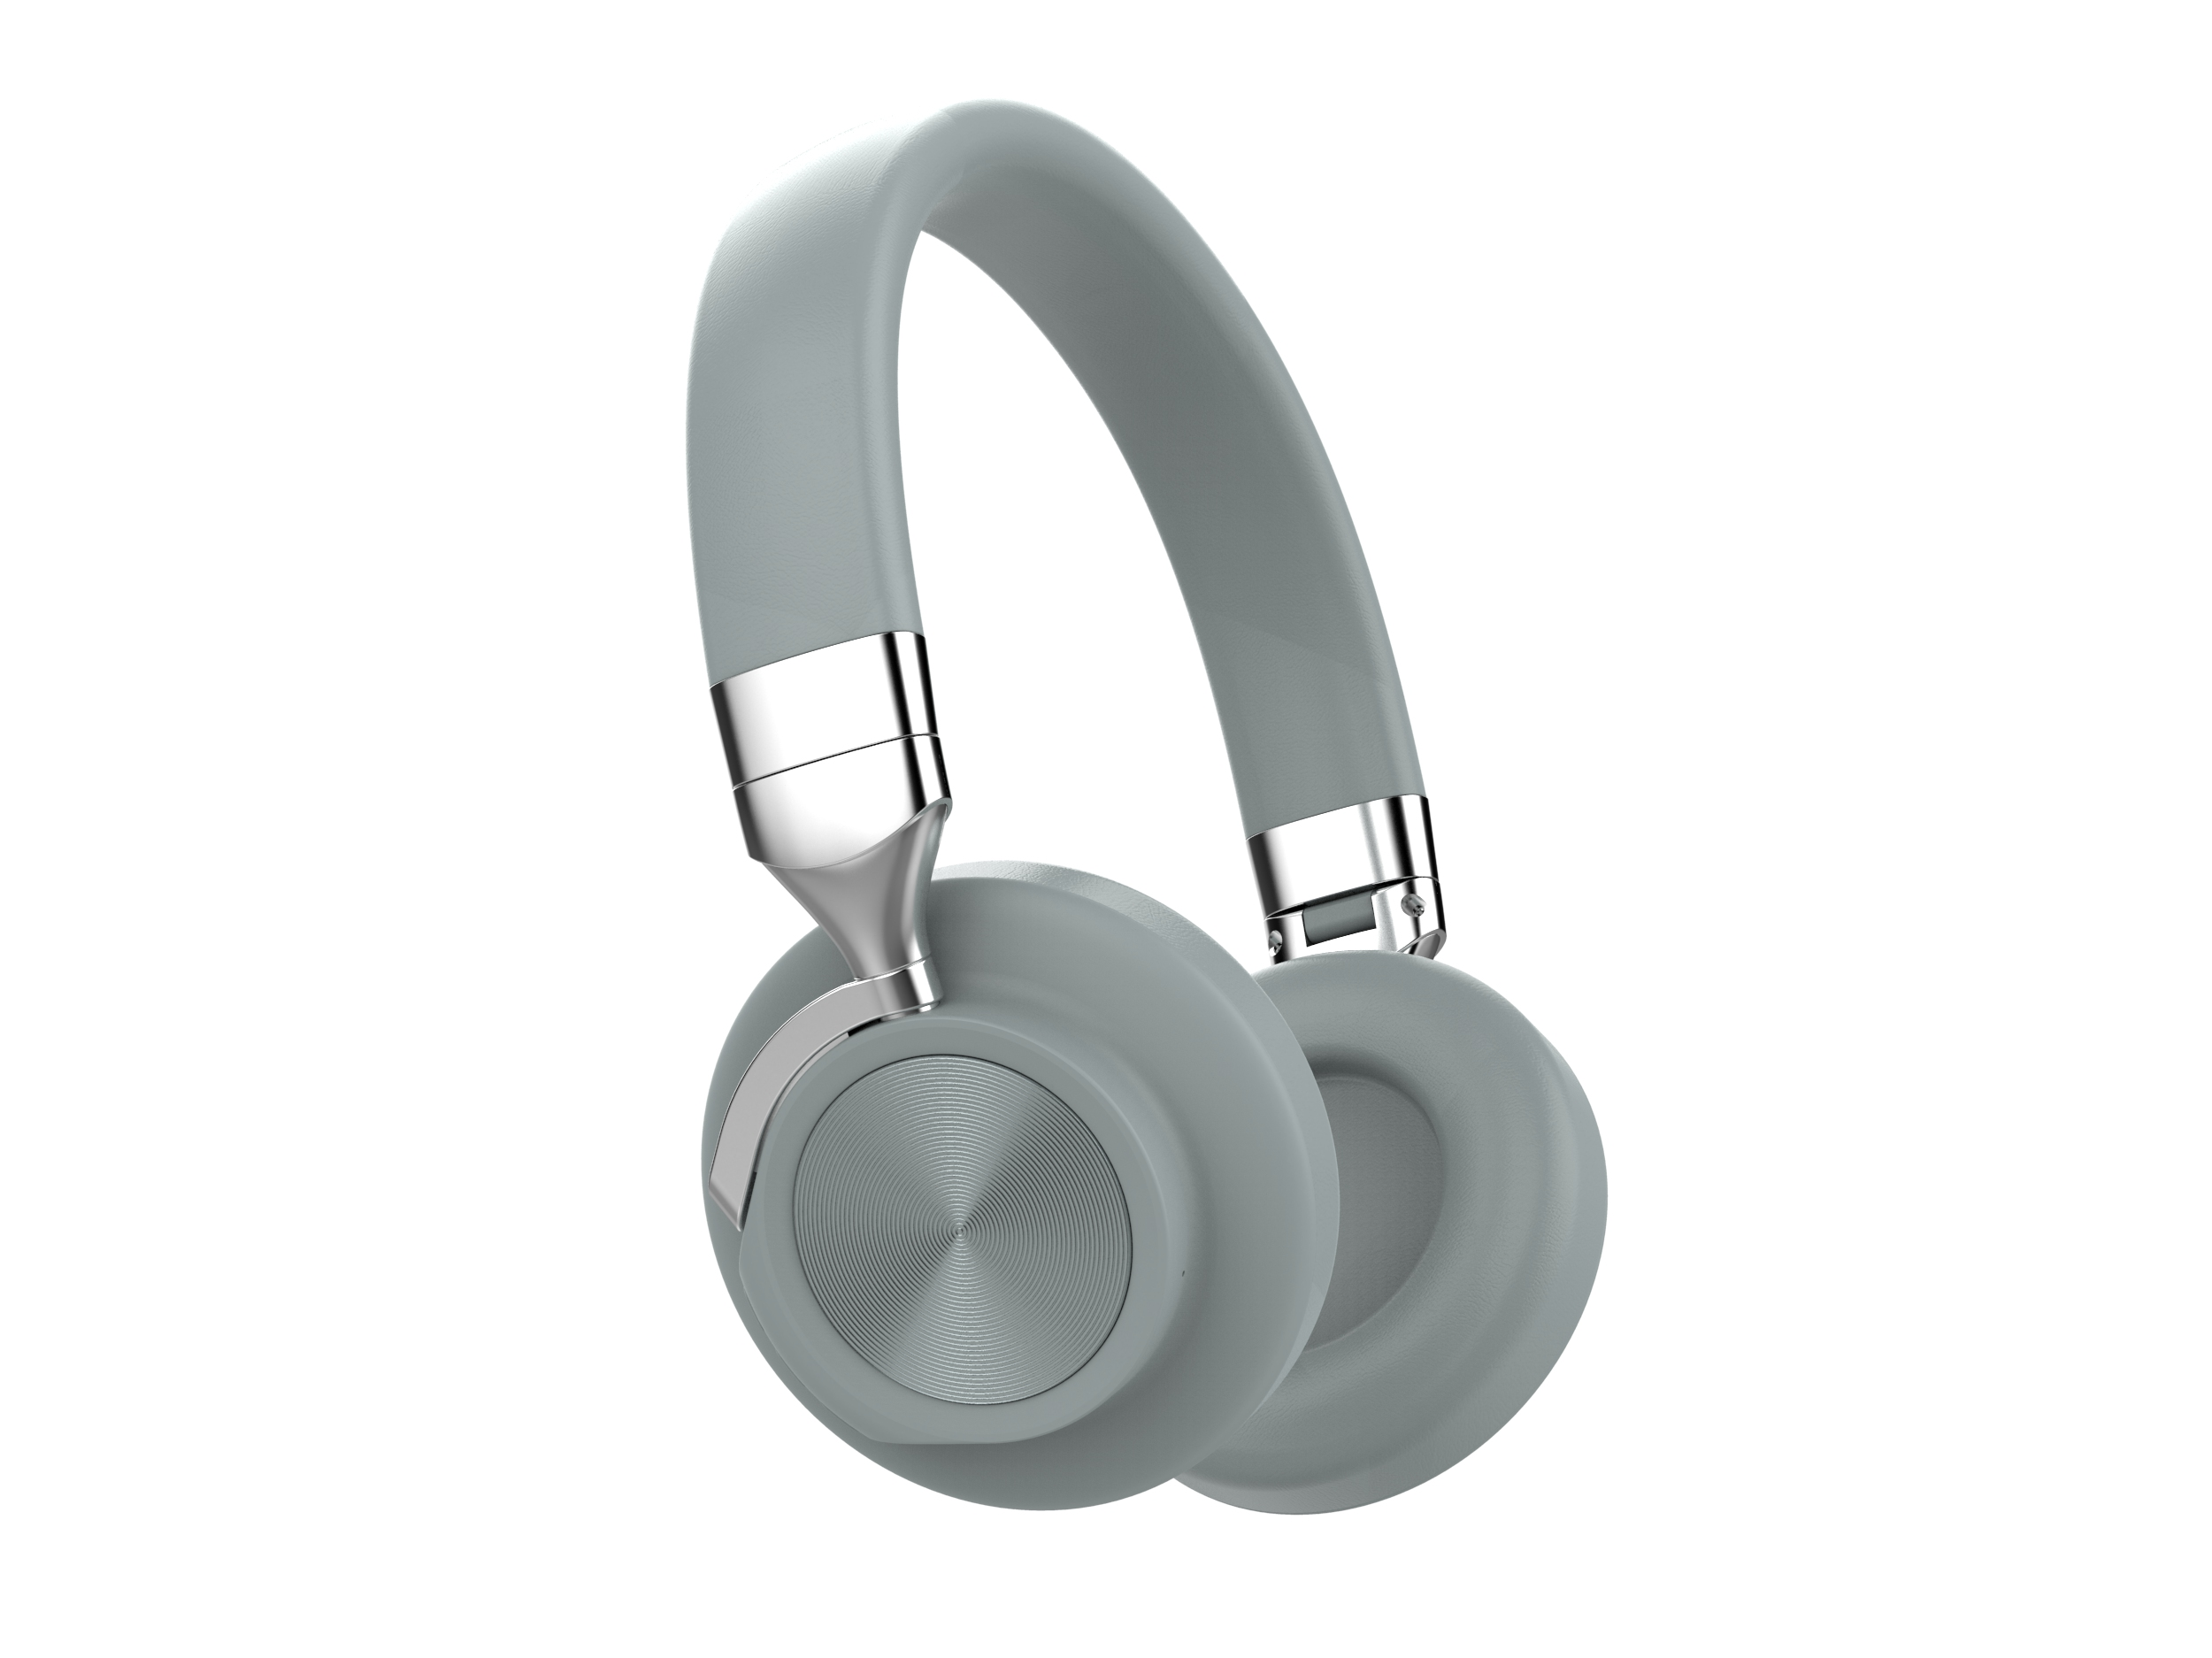 OEM-BL148 bluetooth headphones with mic